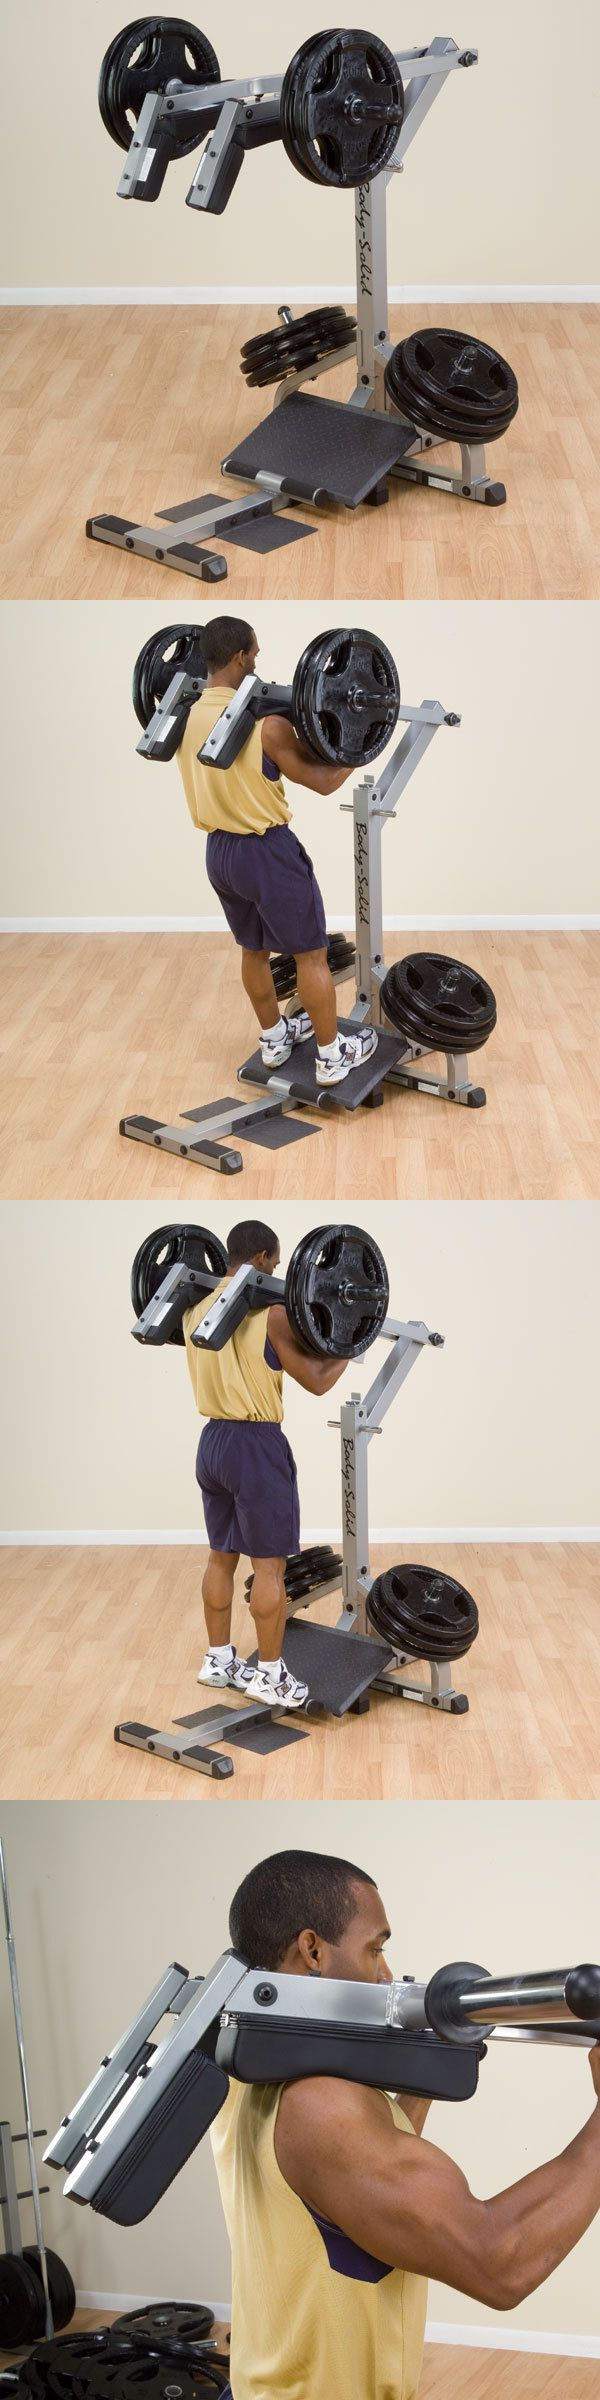 Other Strength Training 28067: Body-Solid Gscl360 Leverage Squat And Calf Machine - Plate Loaded Leg Exercise BUY IT NOW ONLY: $514.0